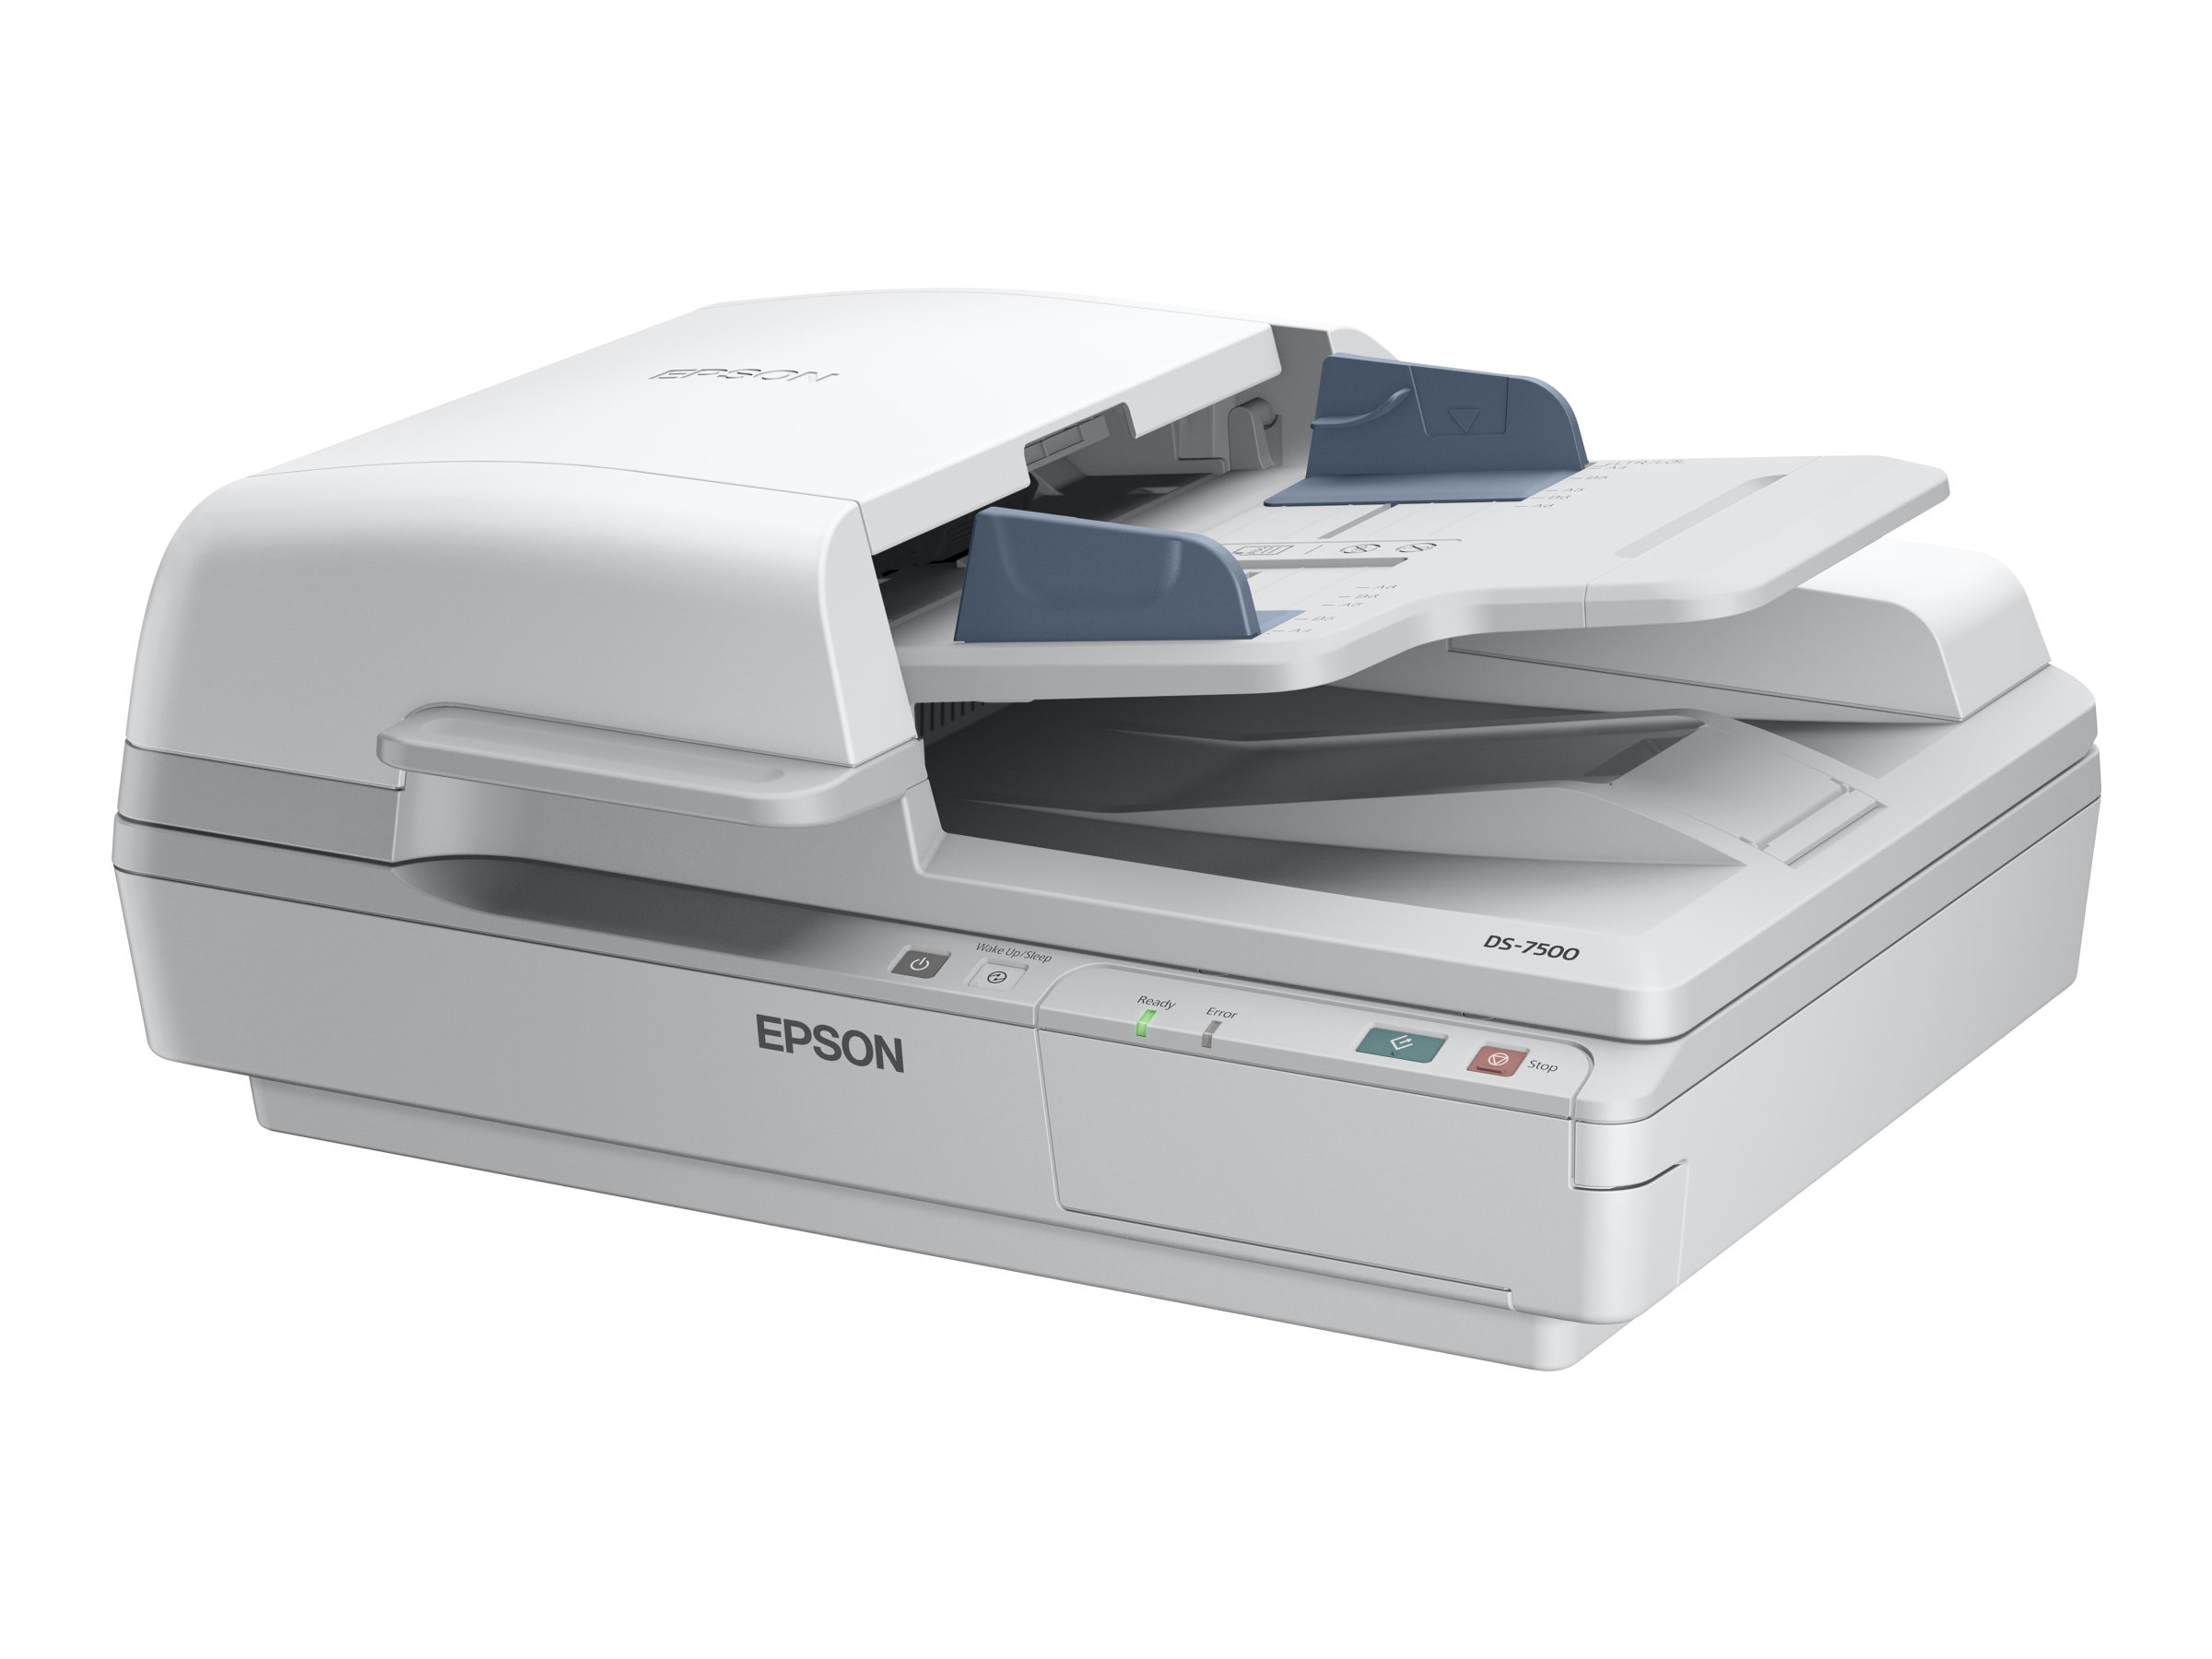 Epson WorkForce DS-6500 Scanner - $899 less instant rebate of $30.00, B11B205221, 14777363, Scanners